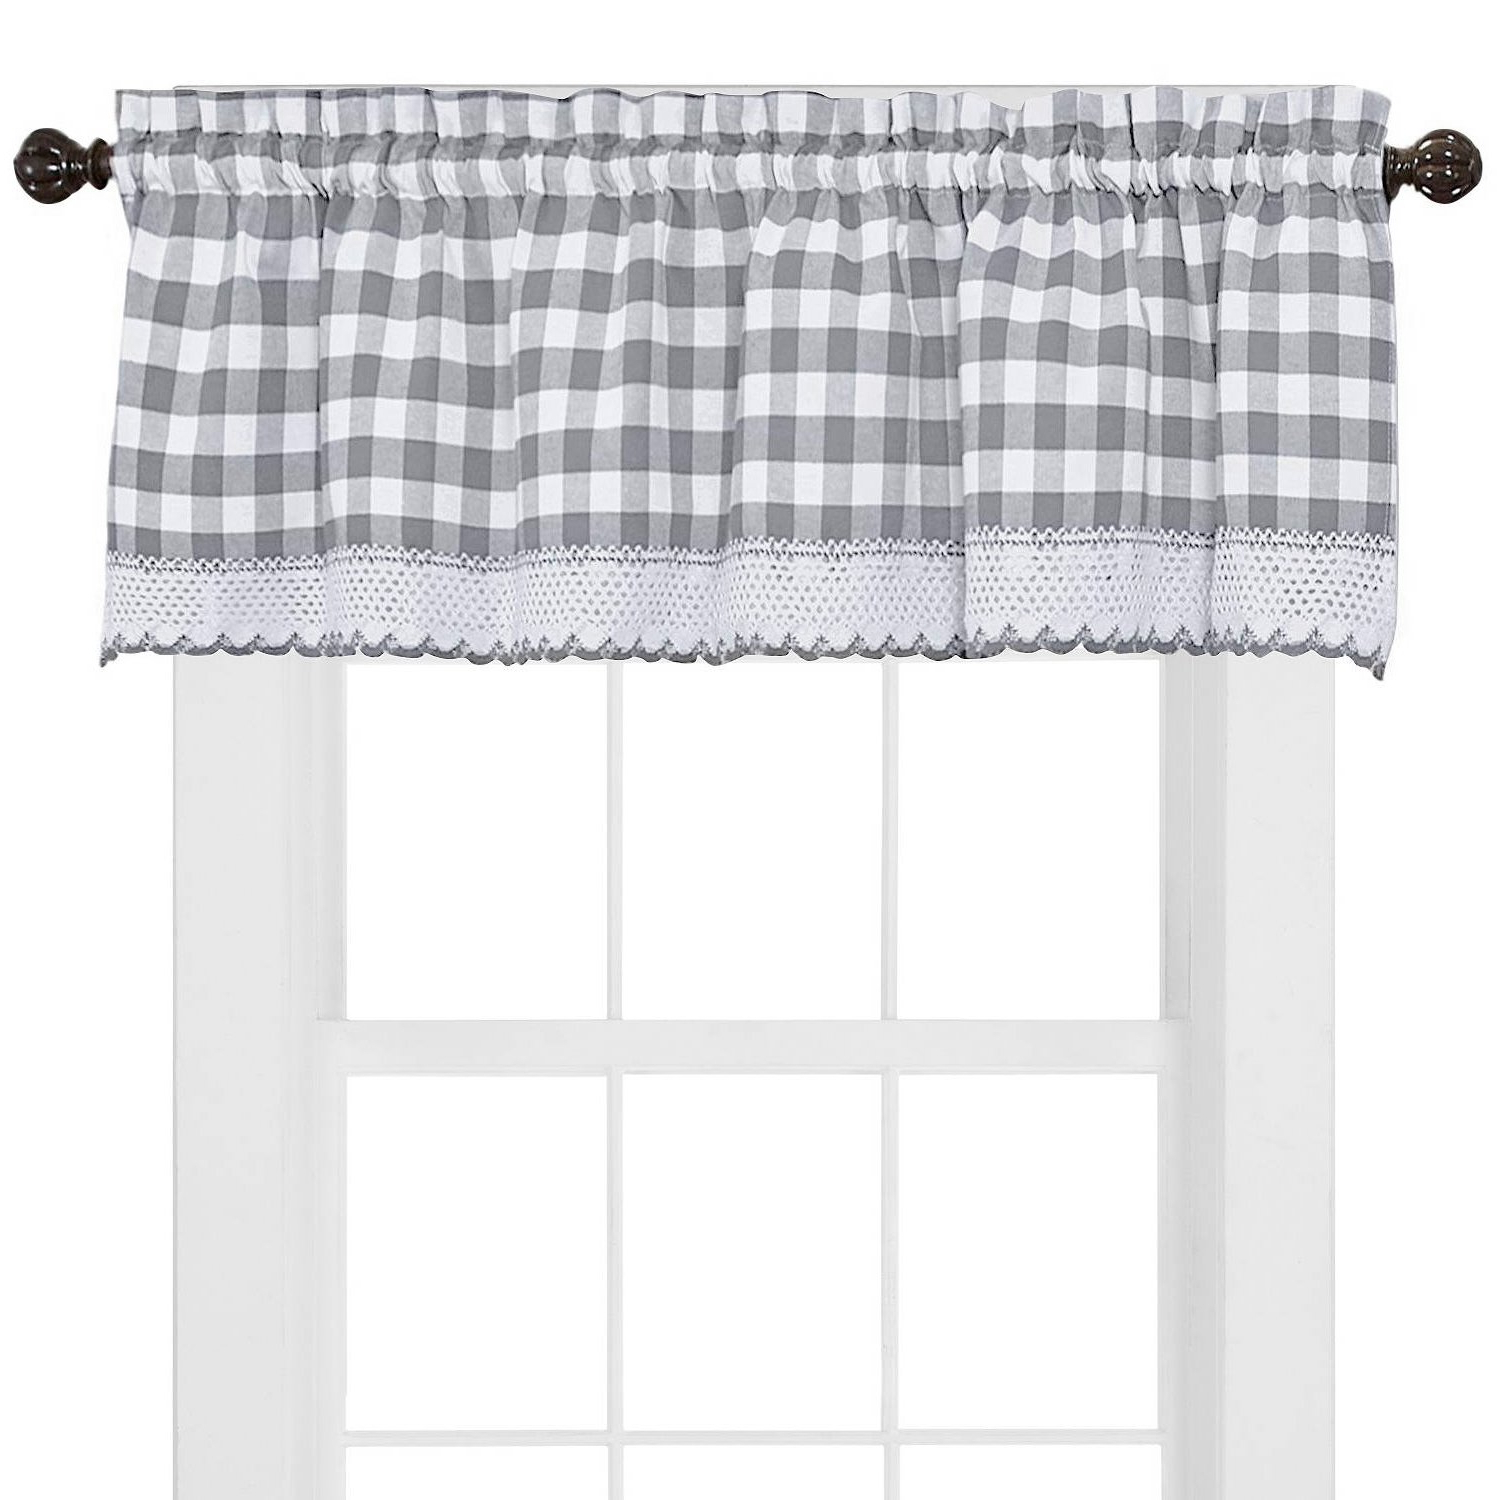 2021 Cotton Blend Classic Checkered Decorative Window Curtains With Sweet Home Collection Kitchen Window Curtain Panel Treatment Decorative Buffalo Check Design Valance Gray (View 13 of 20)